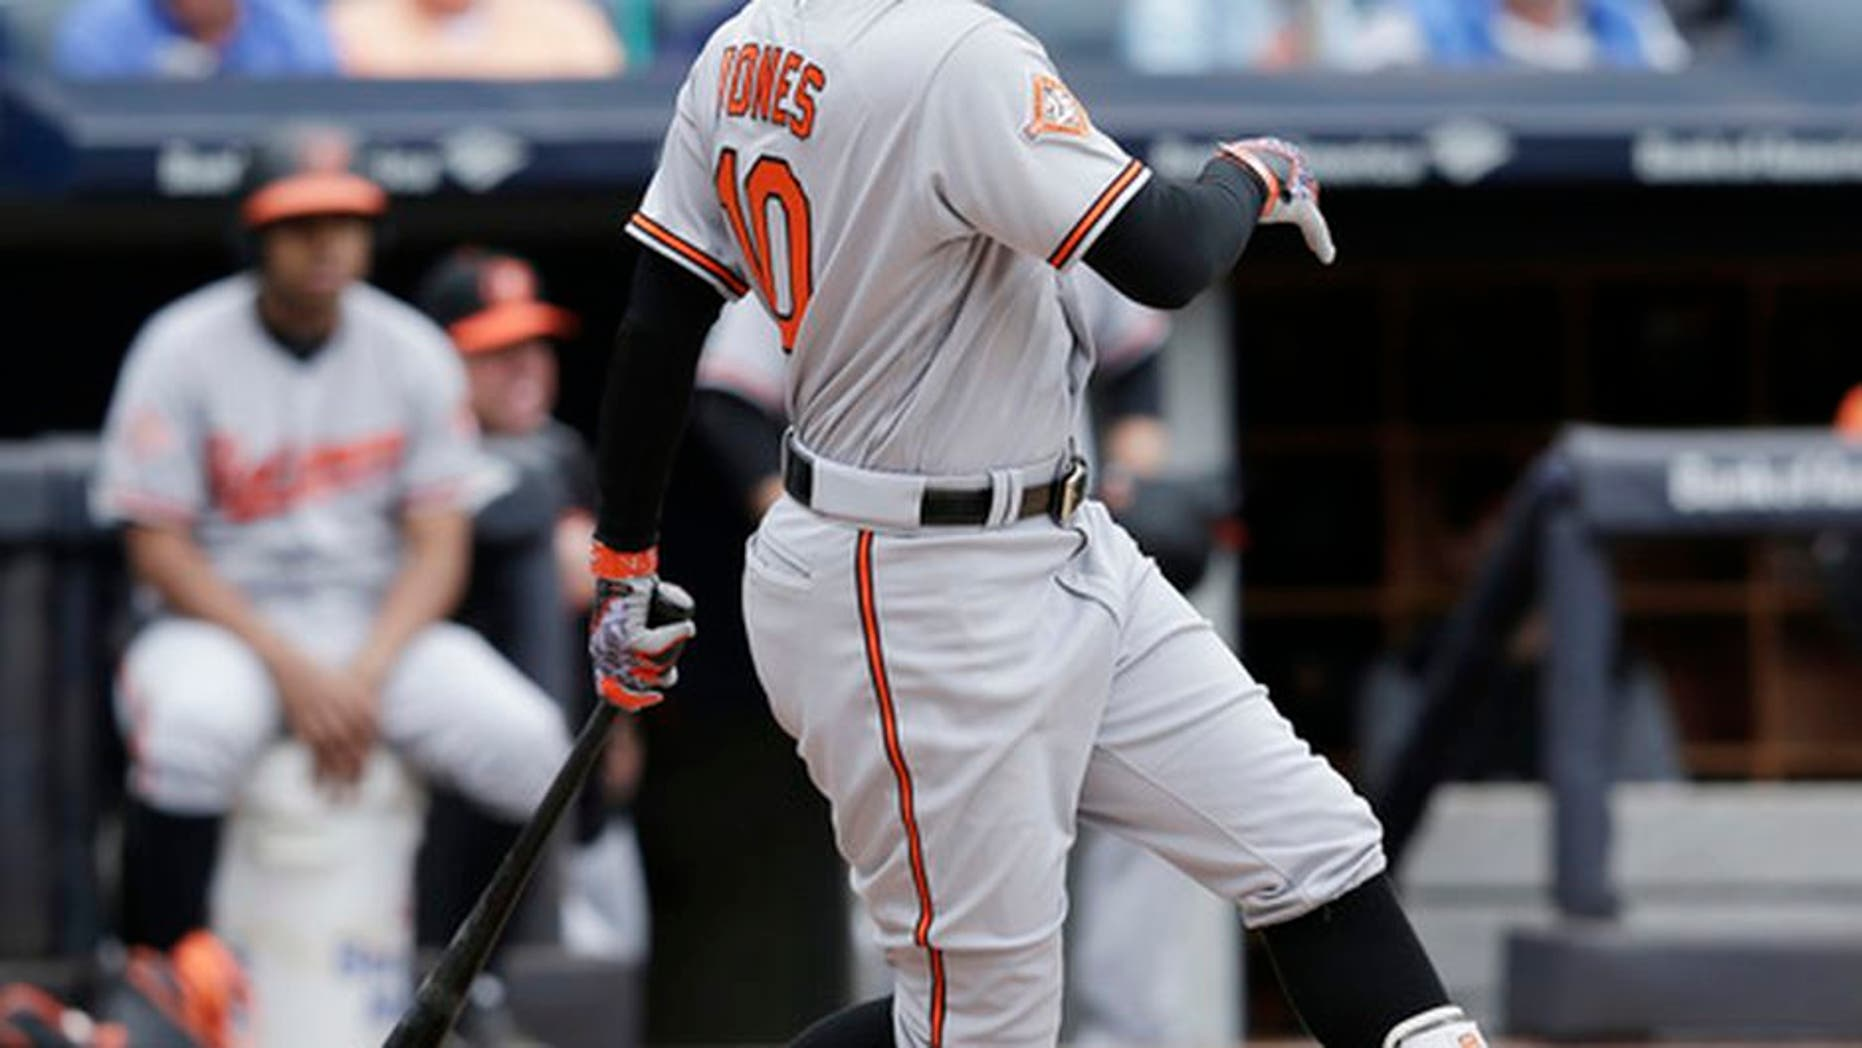 Baltimore Orioles' Adam Jones hits an RBI-single during the third inning of a baseball game against the New York Yankees at Yankee Stadium, Sunday, April 30, 2017, in New York. (AP Photo/Seth Wenig)